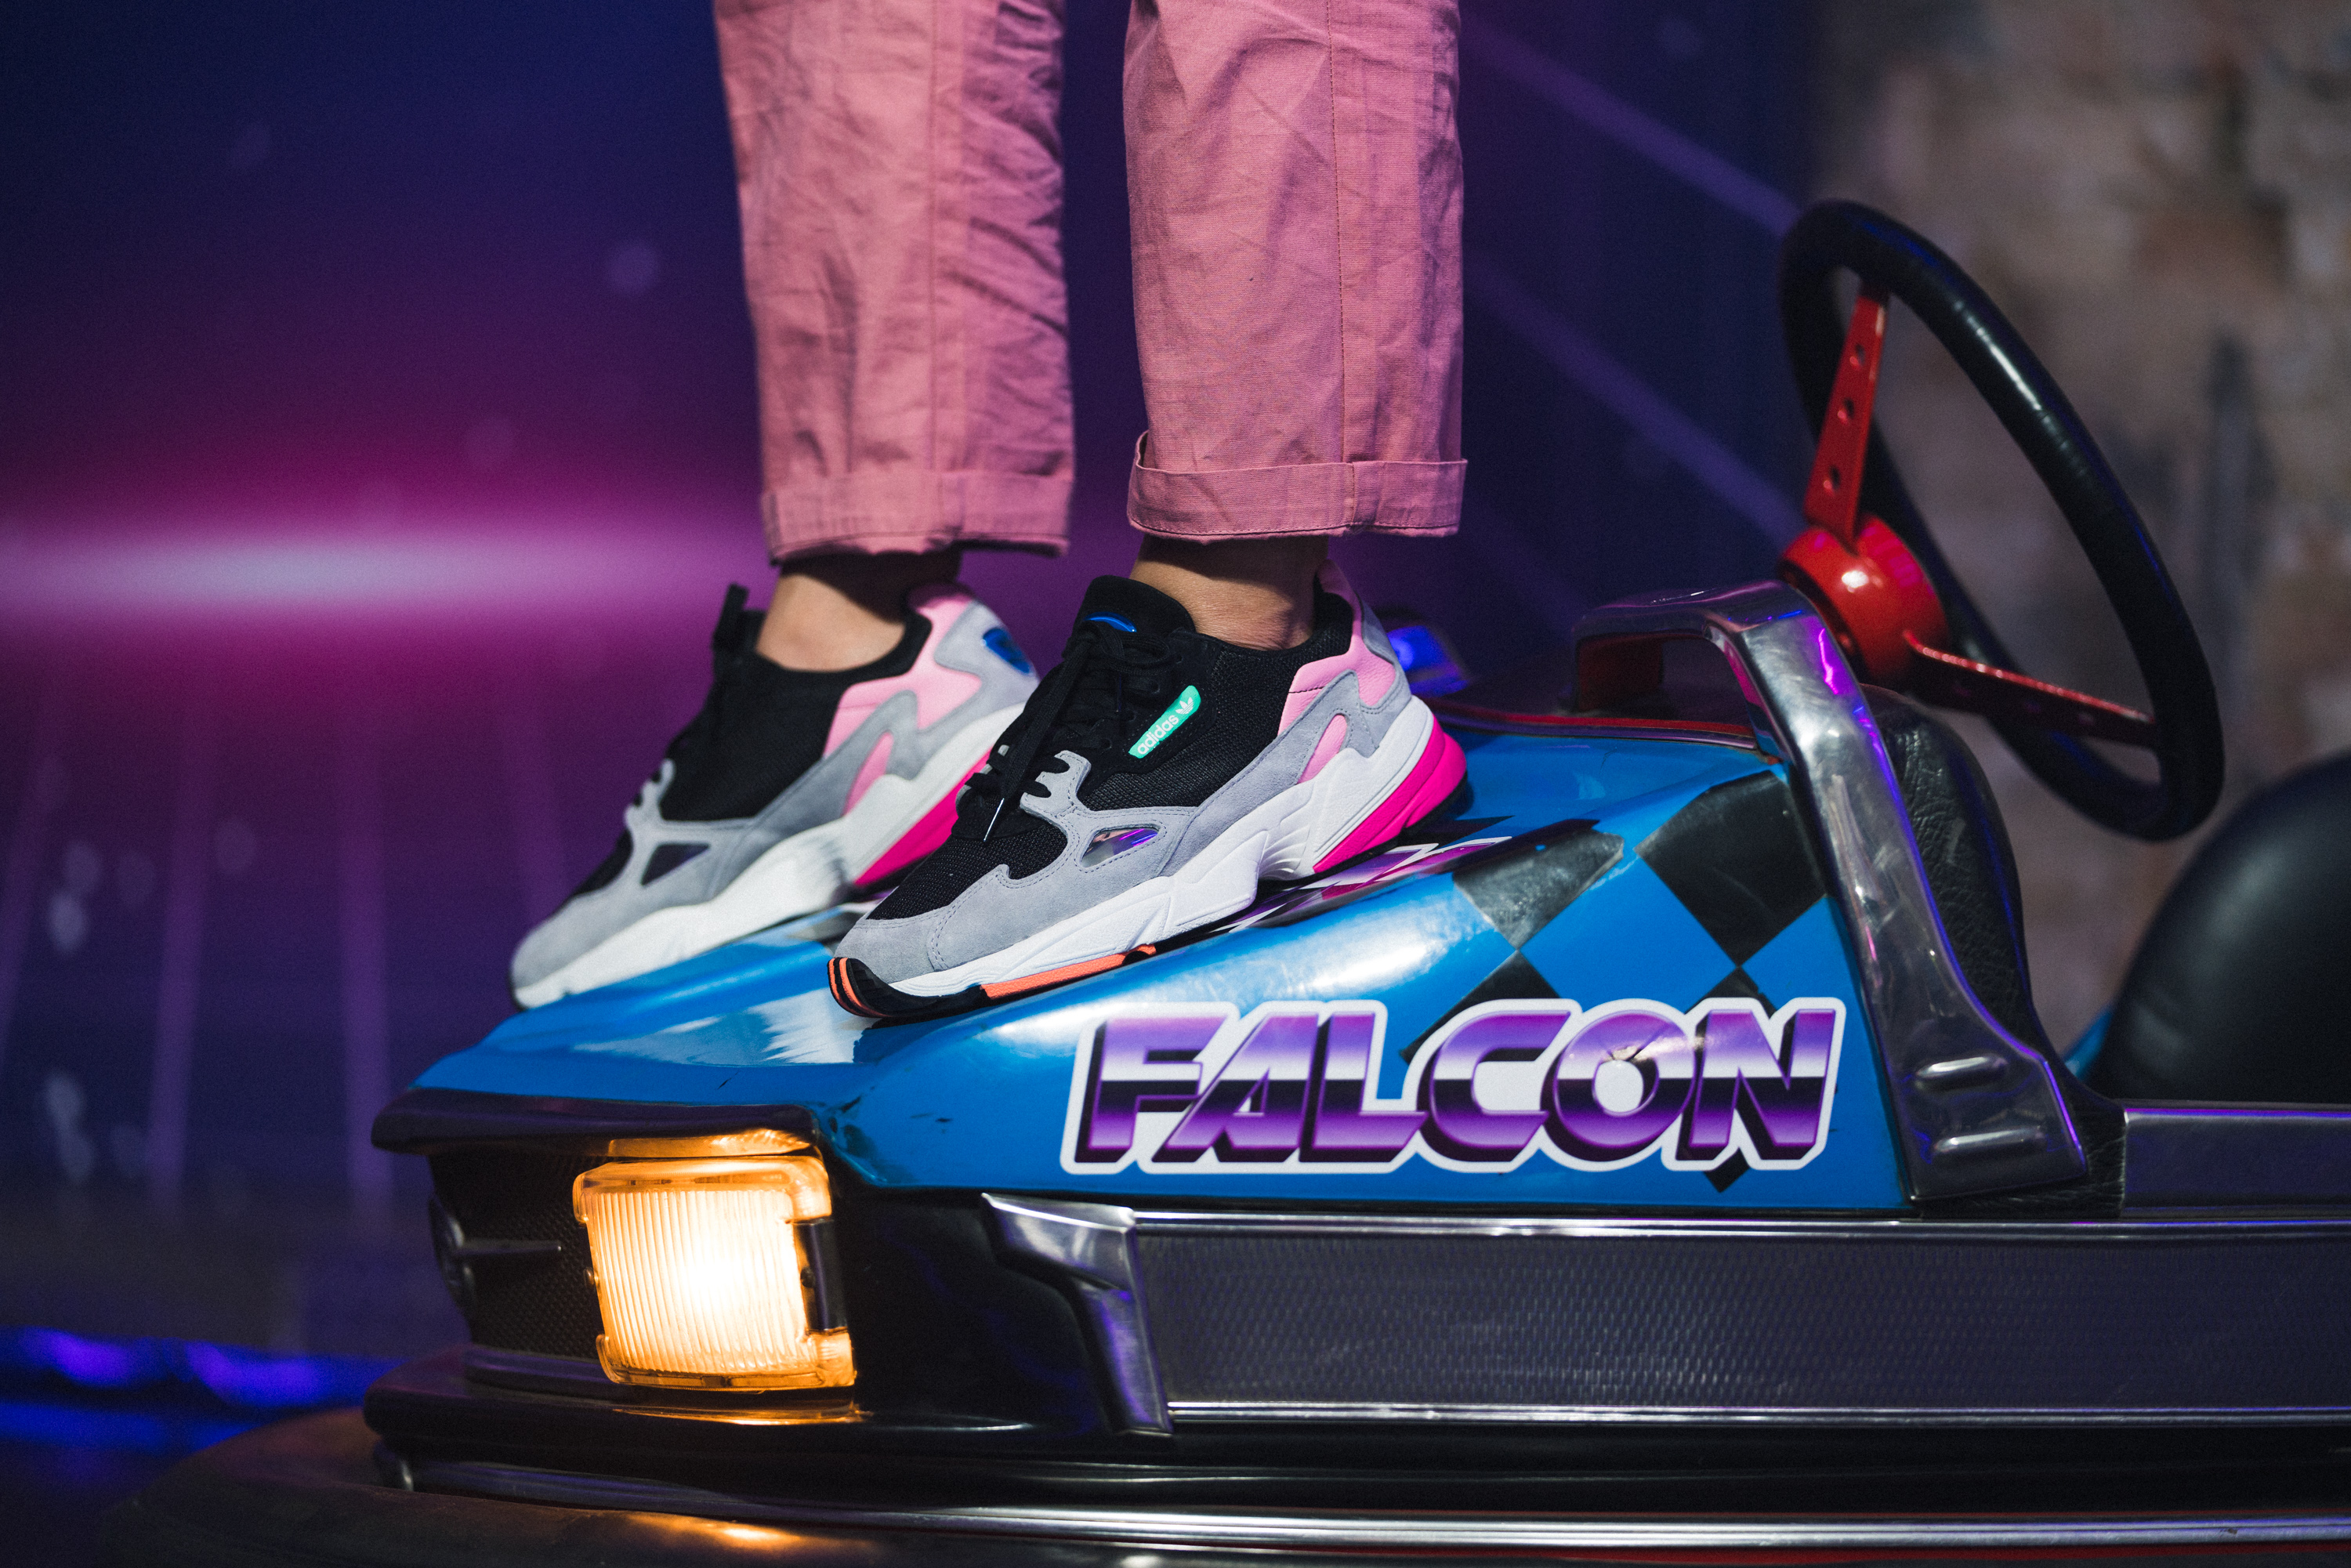 separation shoes 9ad6e 45d8a 5 Quick Facts About the adidas Falcon W